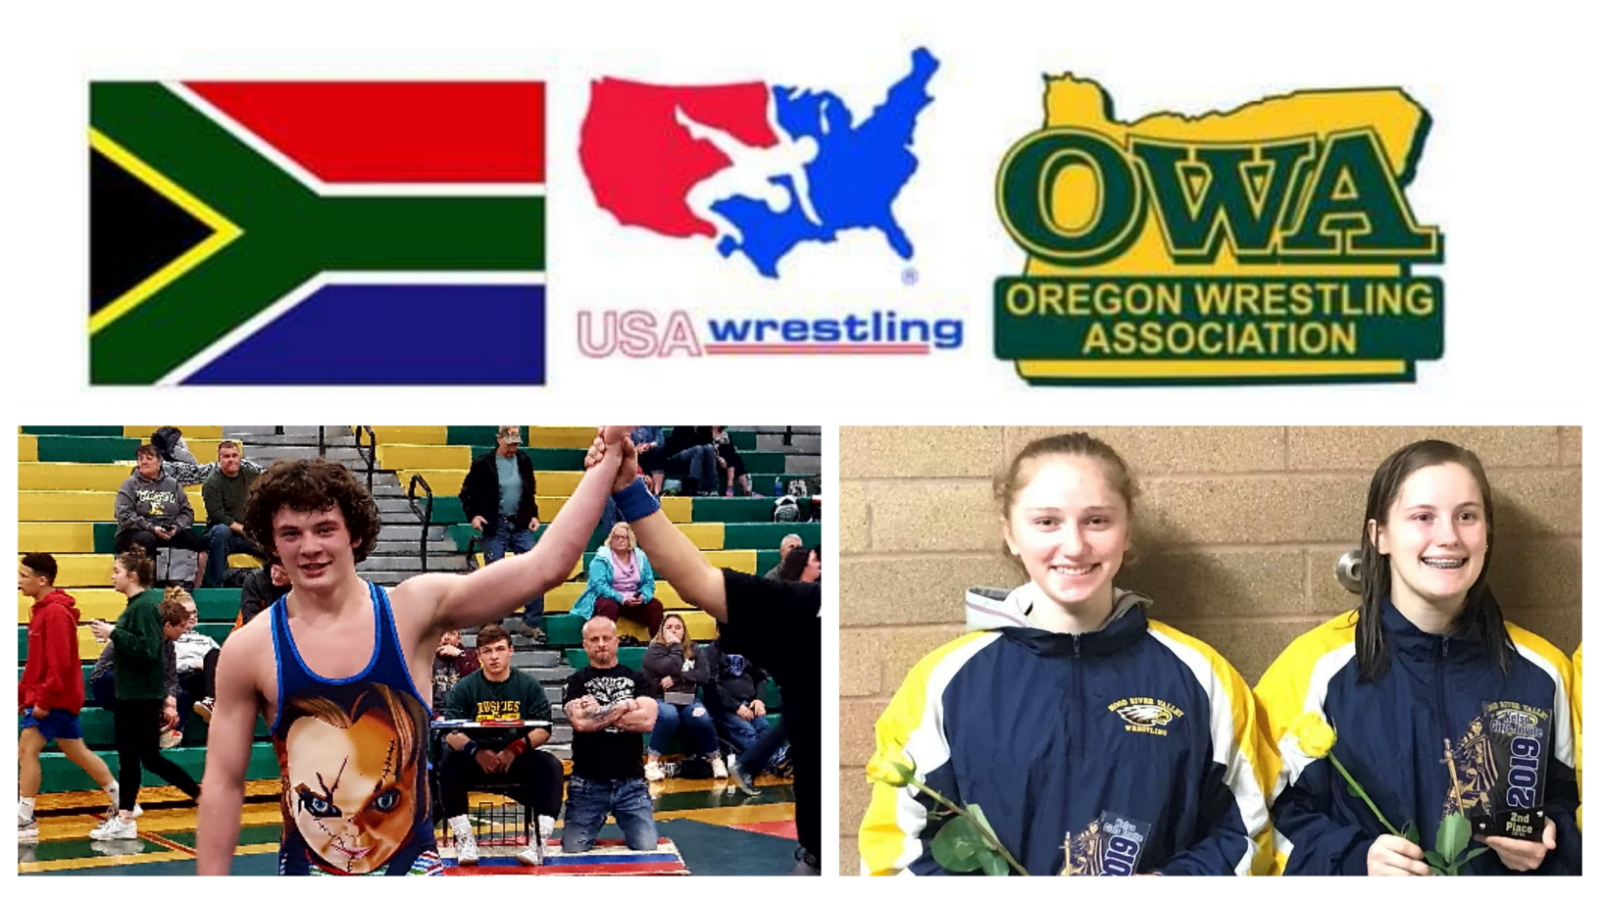 Muenzer, Sullenger & Kroll earn spot on Oregon Cultural Exchange Wrestling Team to South Africa in July